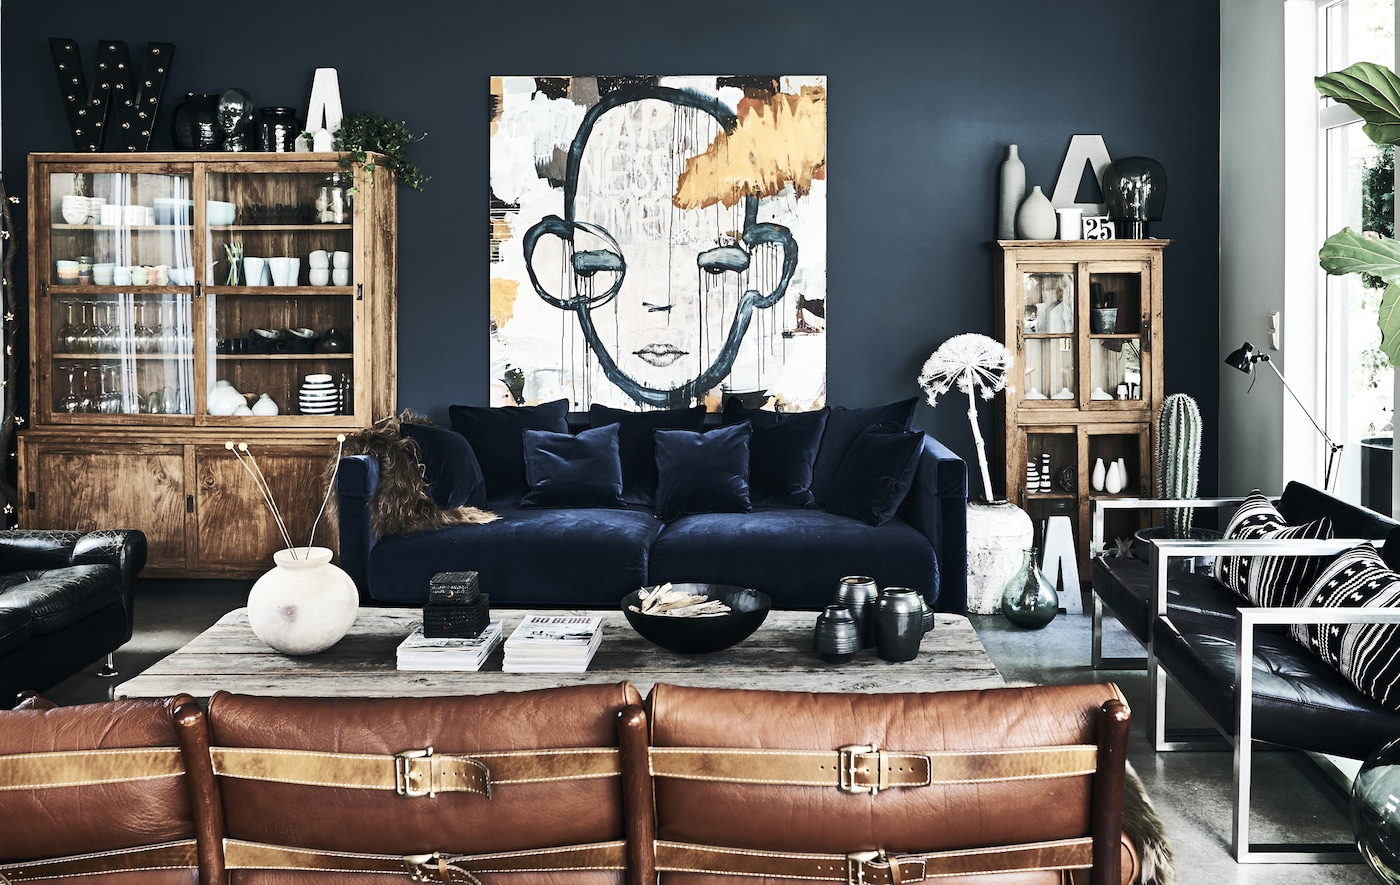 A living room with blue velvet sofa and dark walls.